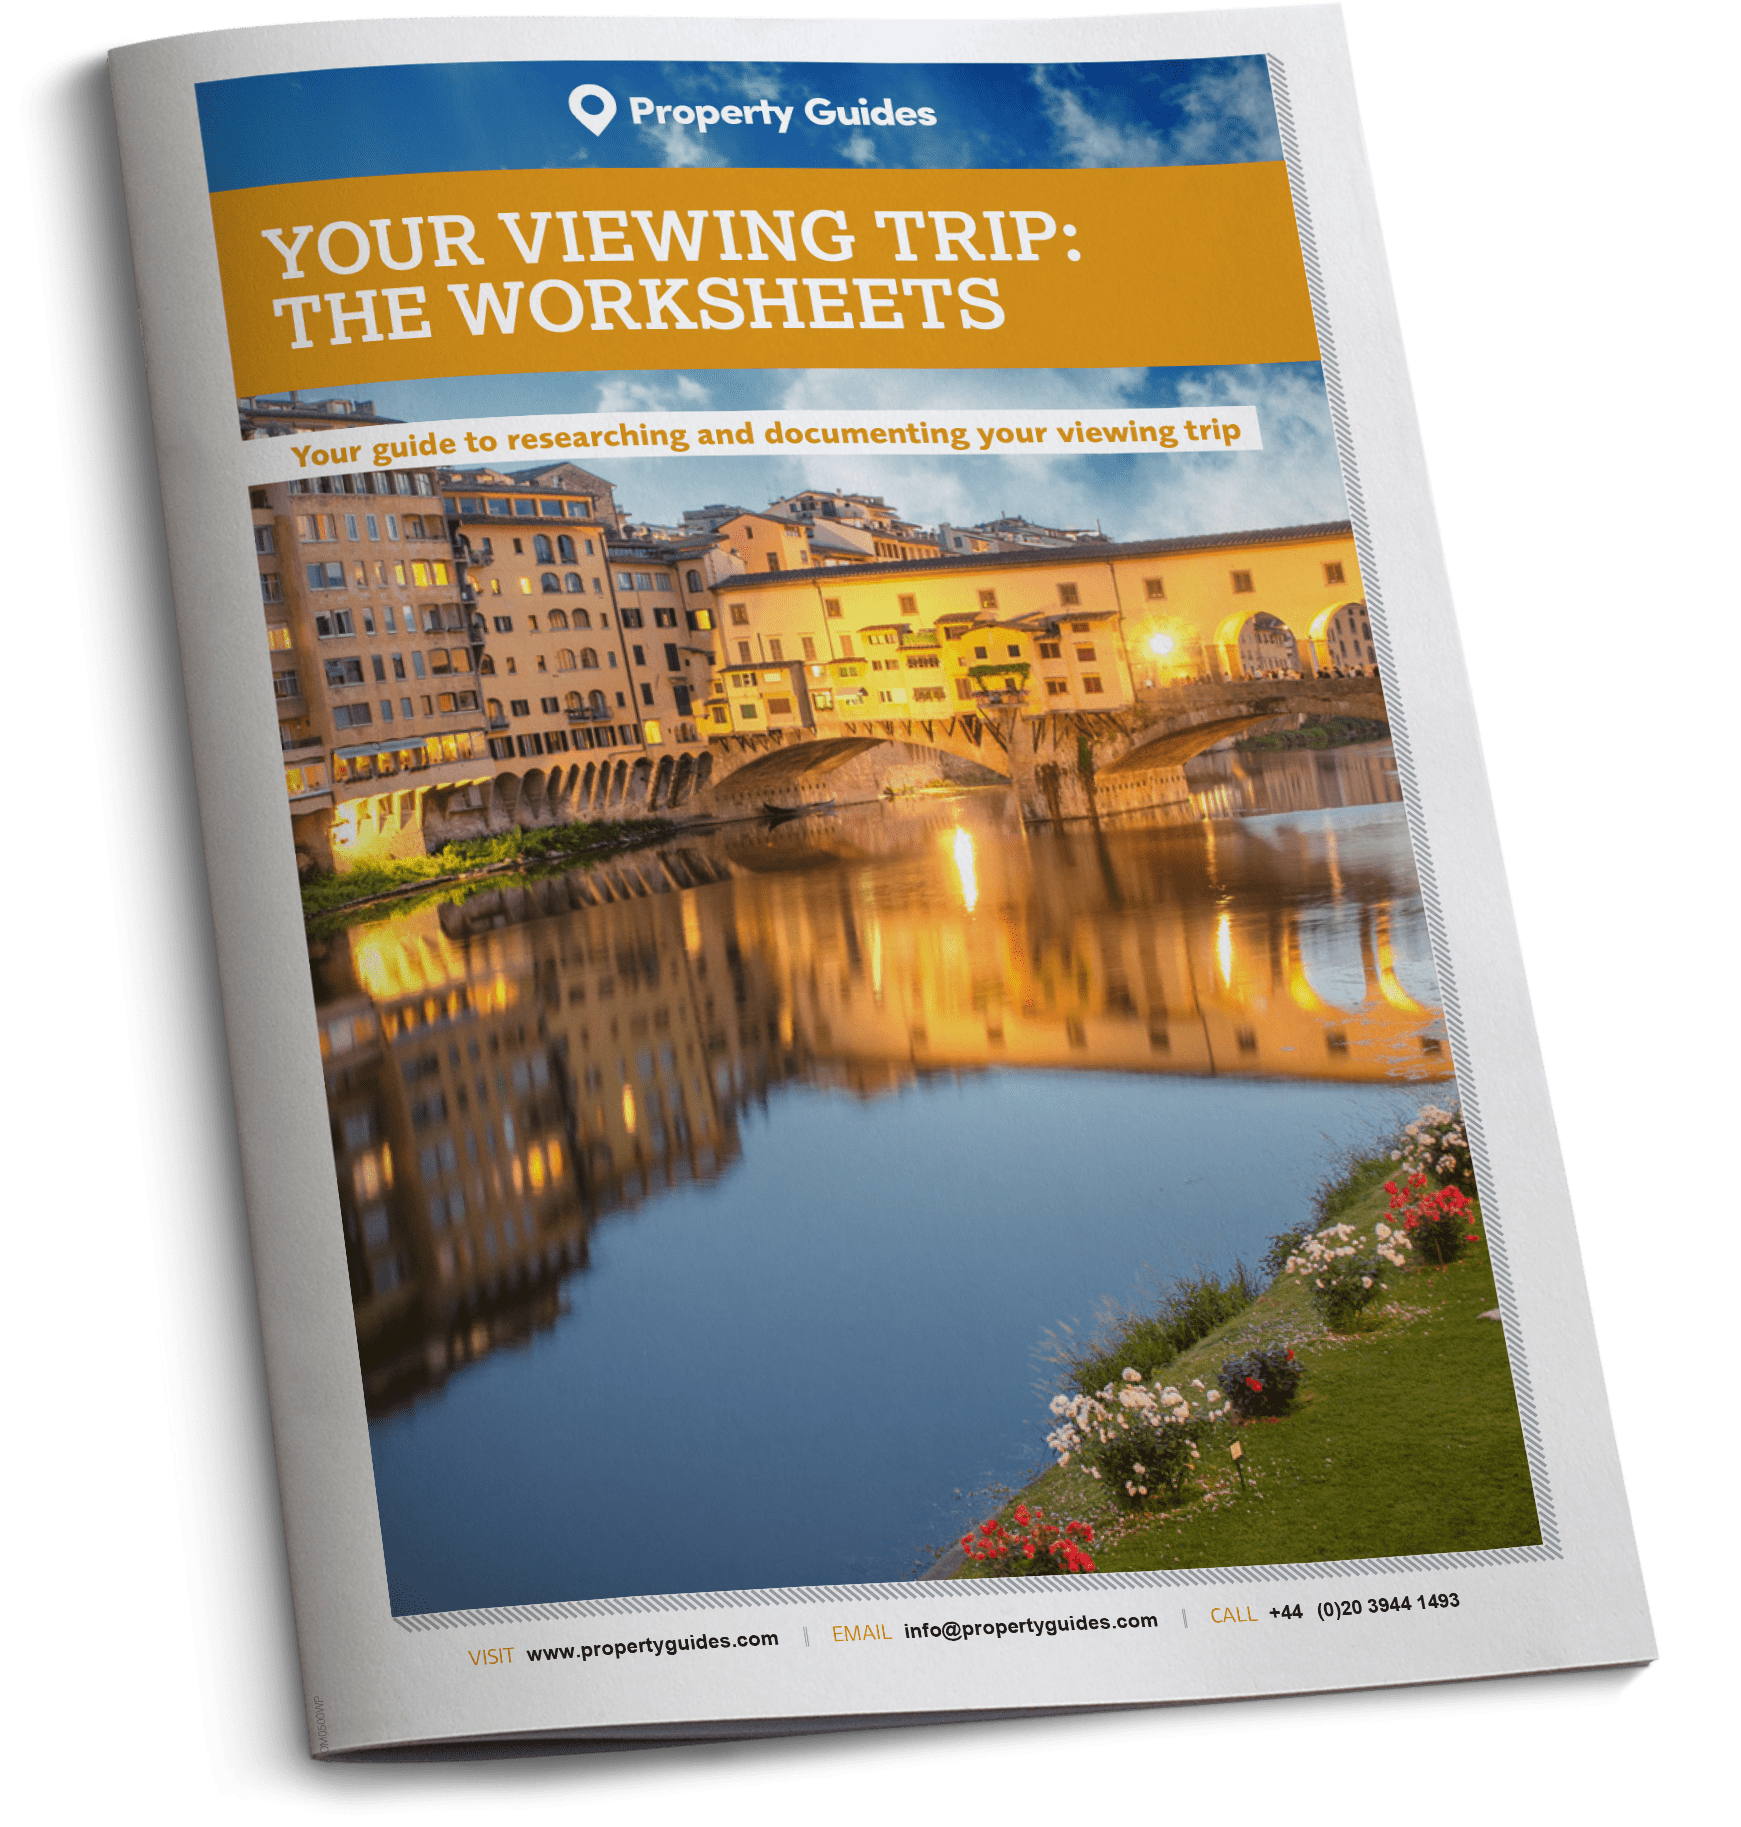 Viewing Trip Worksheets